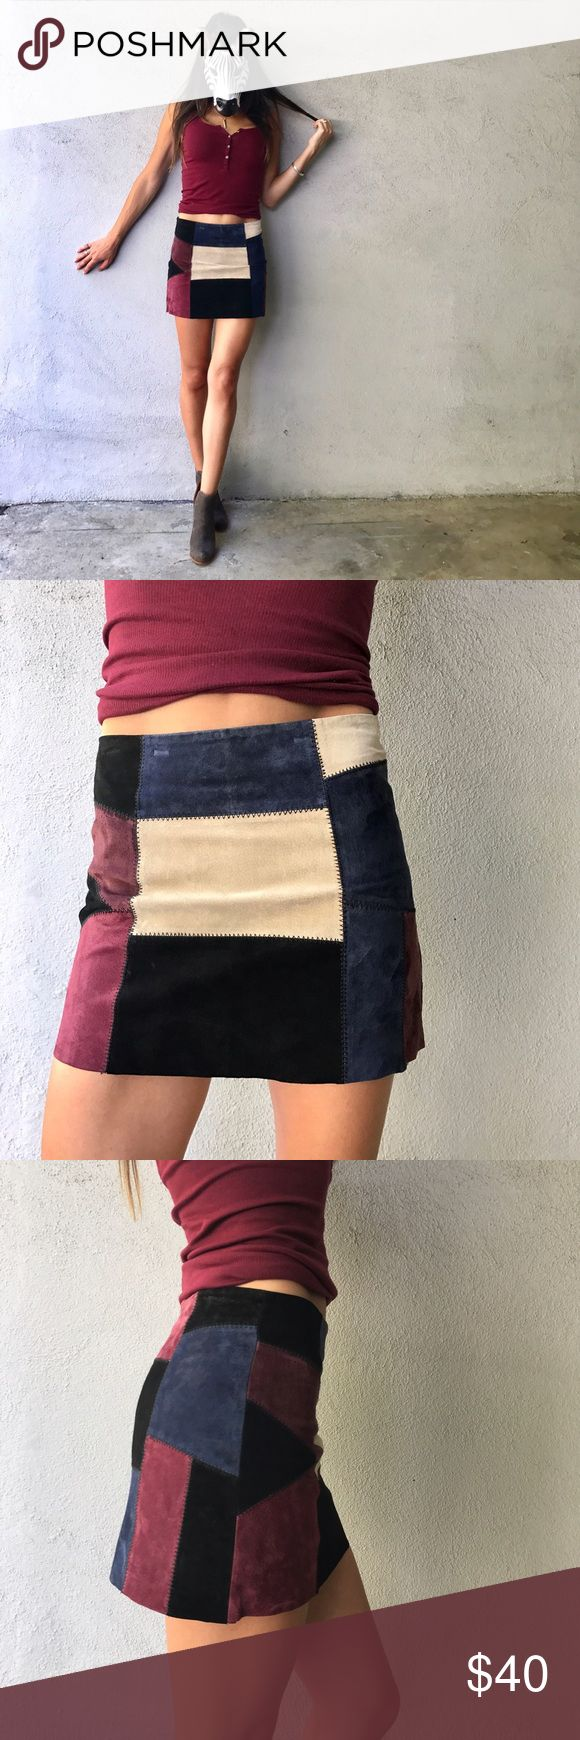 "Zara patchwork skirt! Zara suede patchwork skirt! So friggin adorable and I'm on the fence about selling it. Size small. Waist 13"" laying flat, 13.5"" length. Hurry before I change my mind... 😜 Zara Skirts Mini"